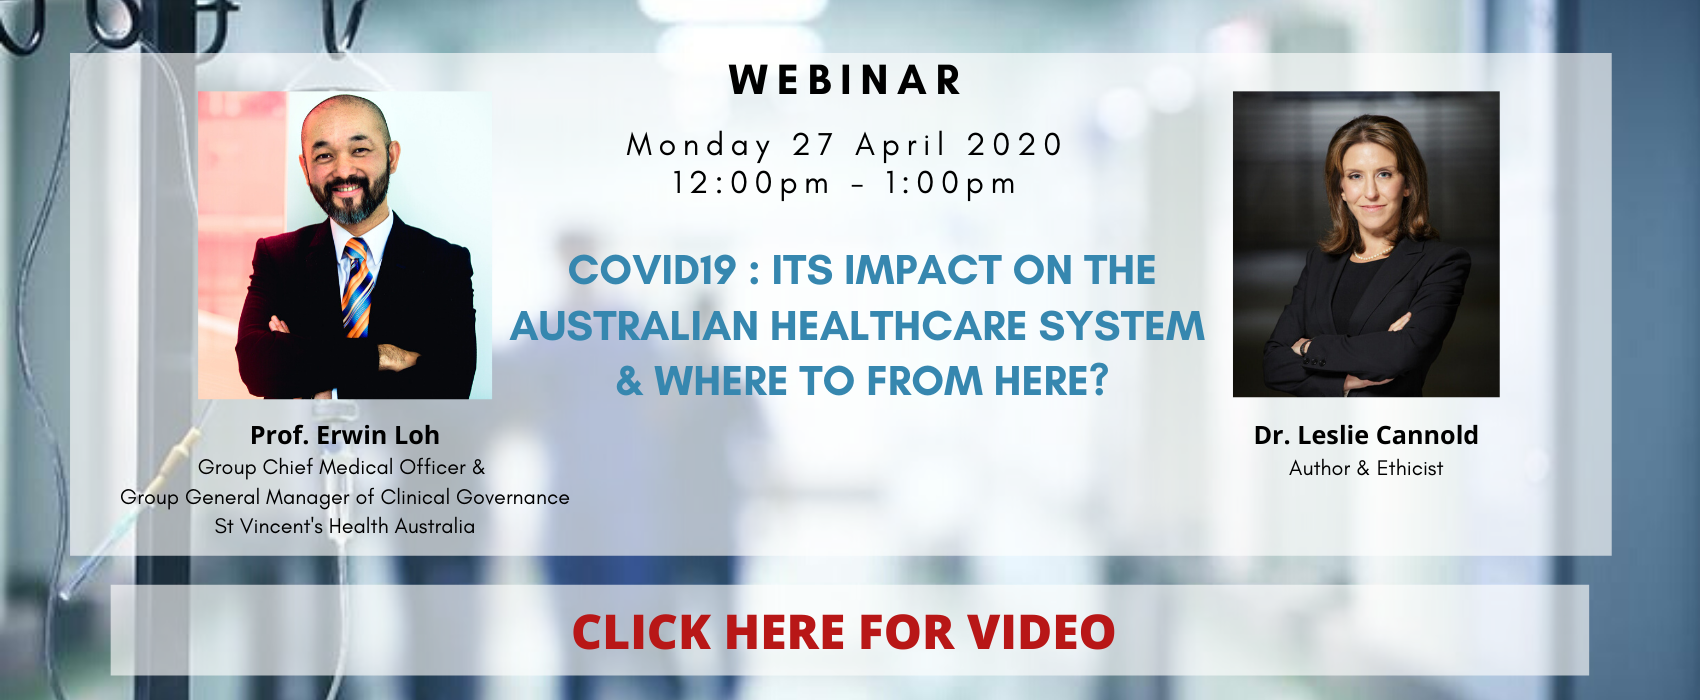 COVID 19: Its Impact On the Australian Healthcare System & Where To From Here?